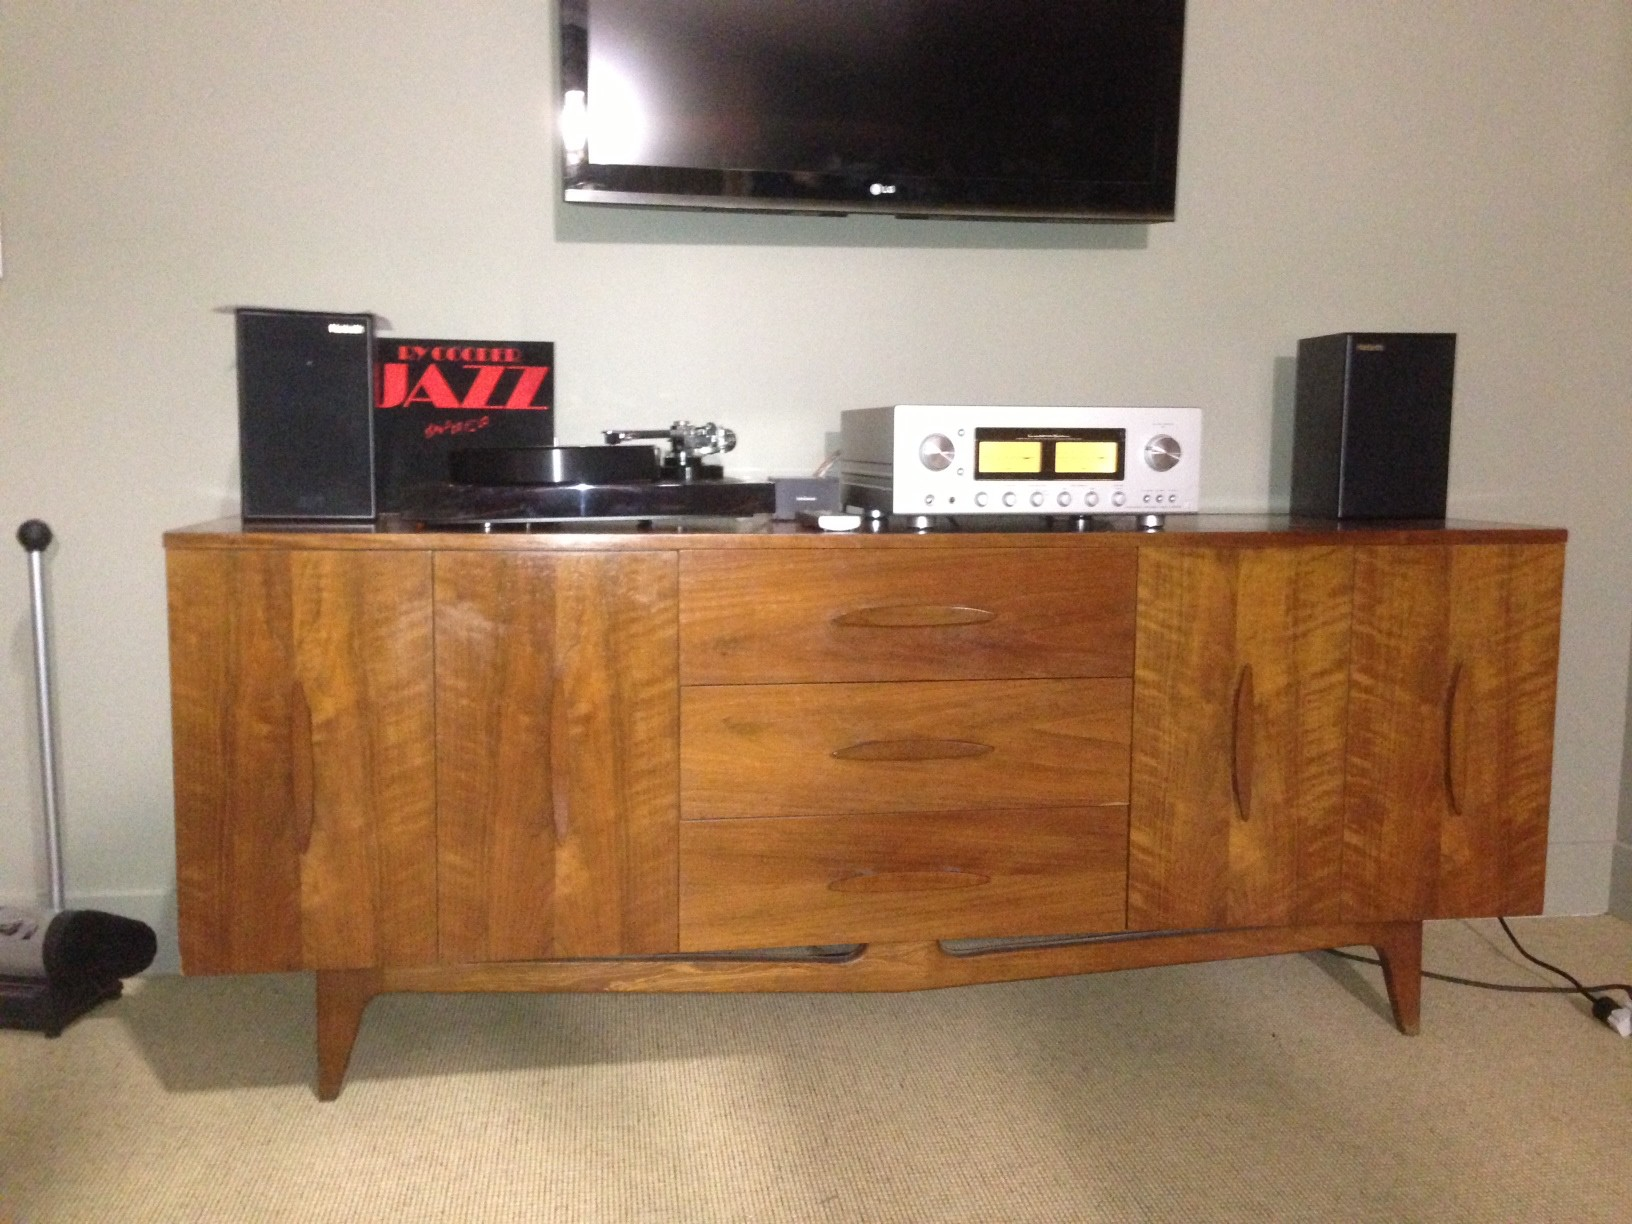 stereo system in Don Cheadle's bedroom